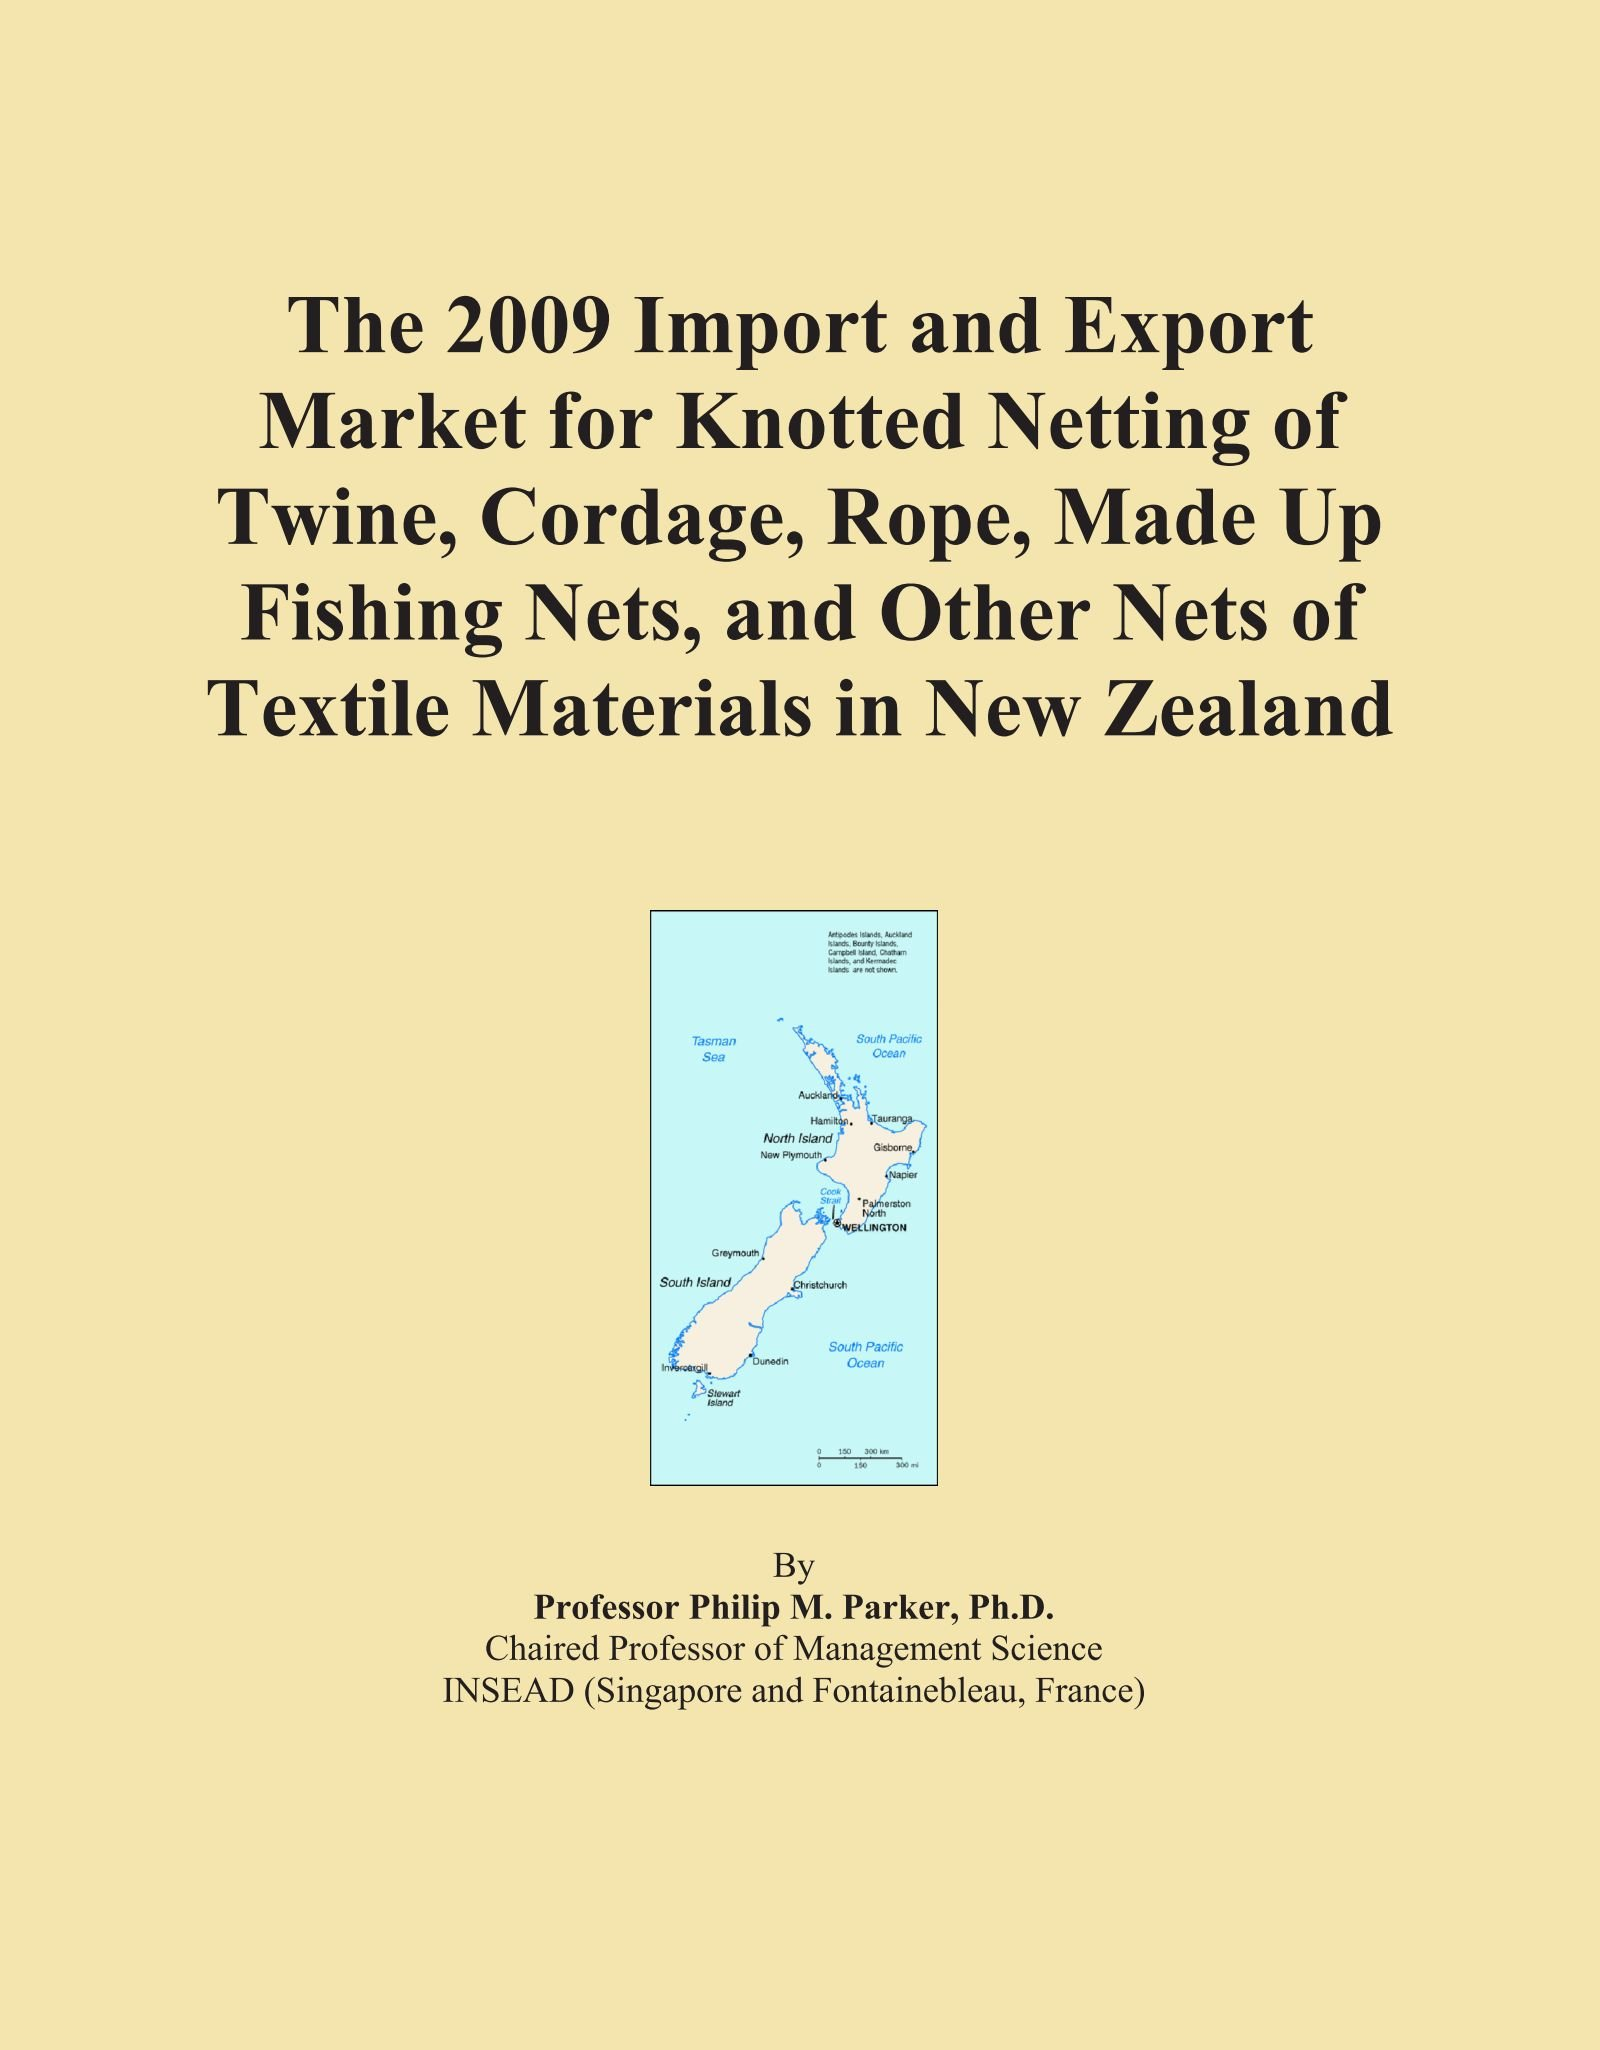 The 2009 Import and Export Market for Knotted Netting of Twine, Cordage, Rope, Made Up Fishing Nets, and Other Nets of Textile Materials in New Zealand ebook